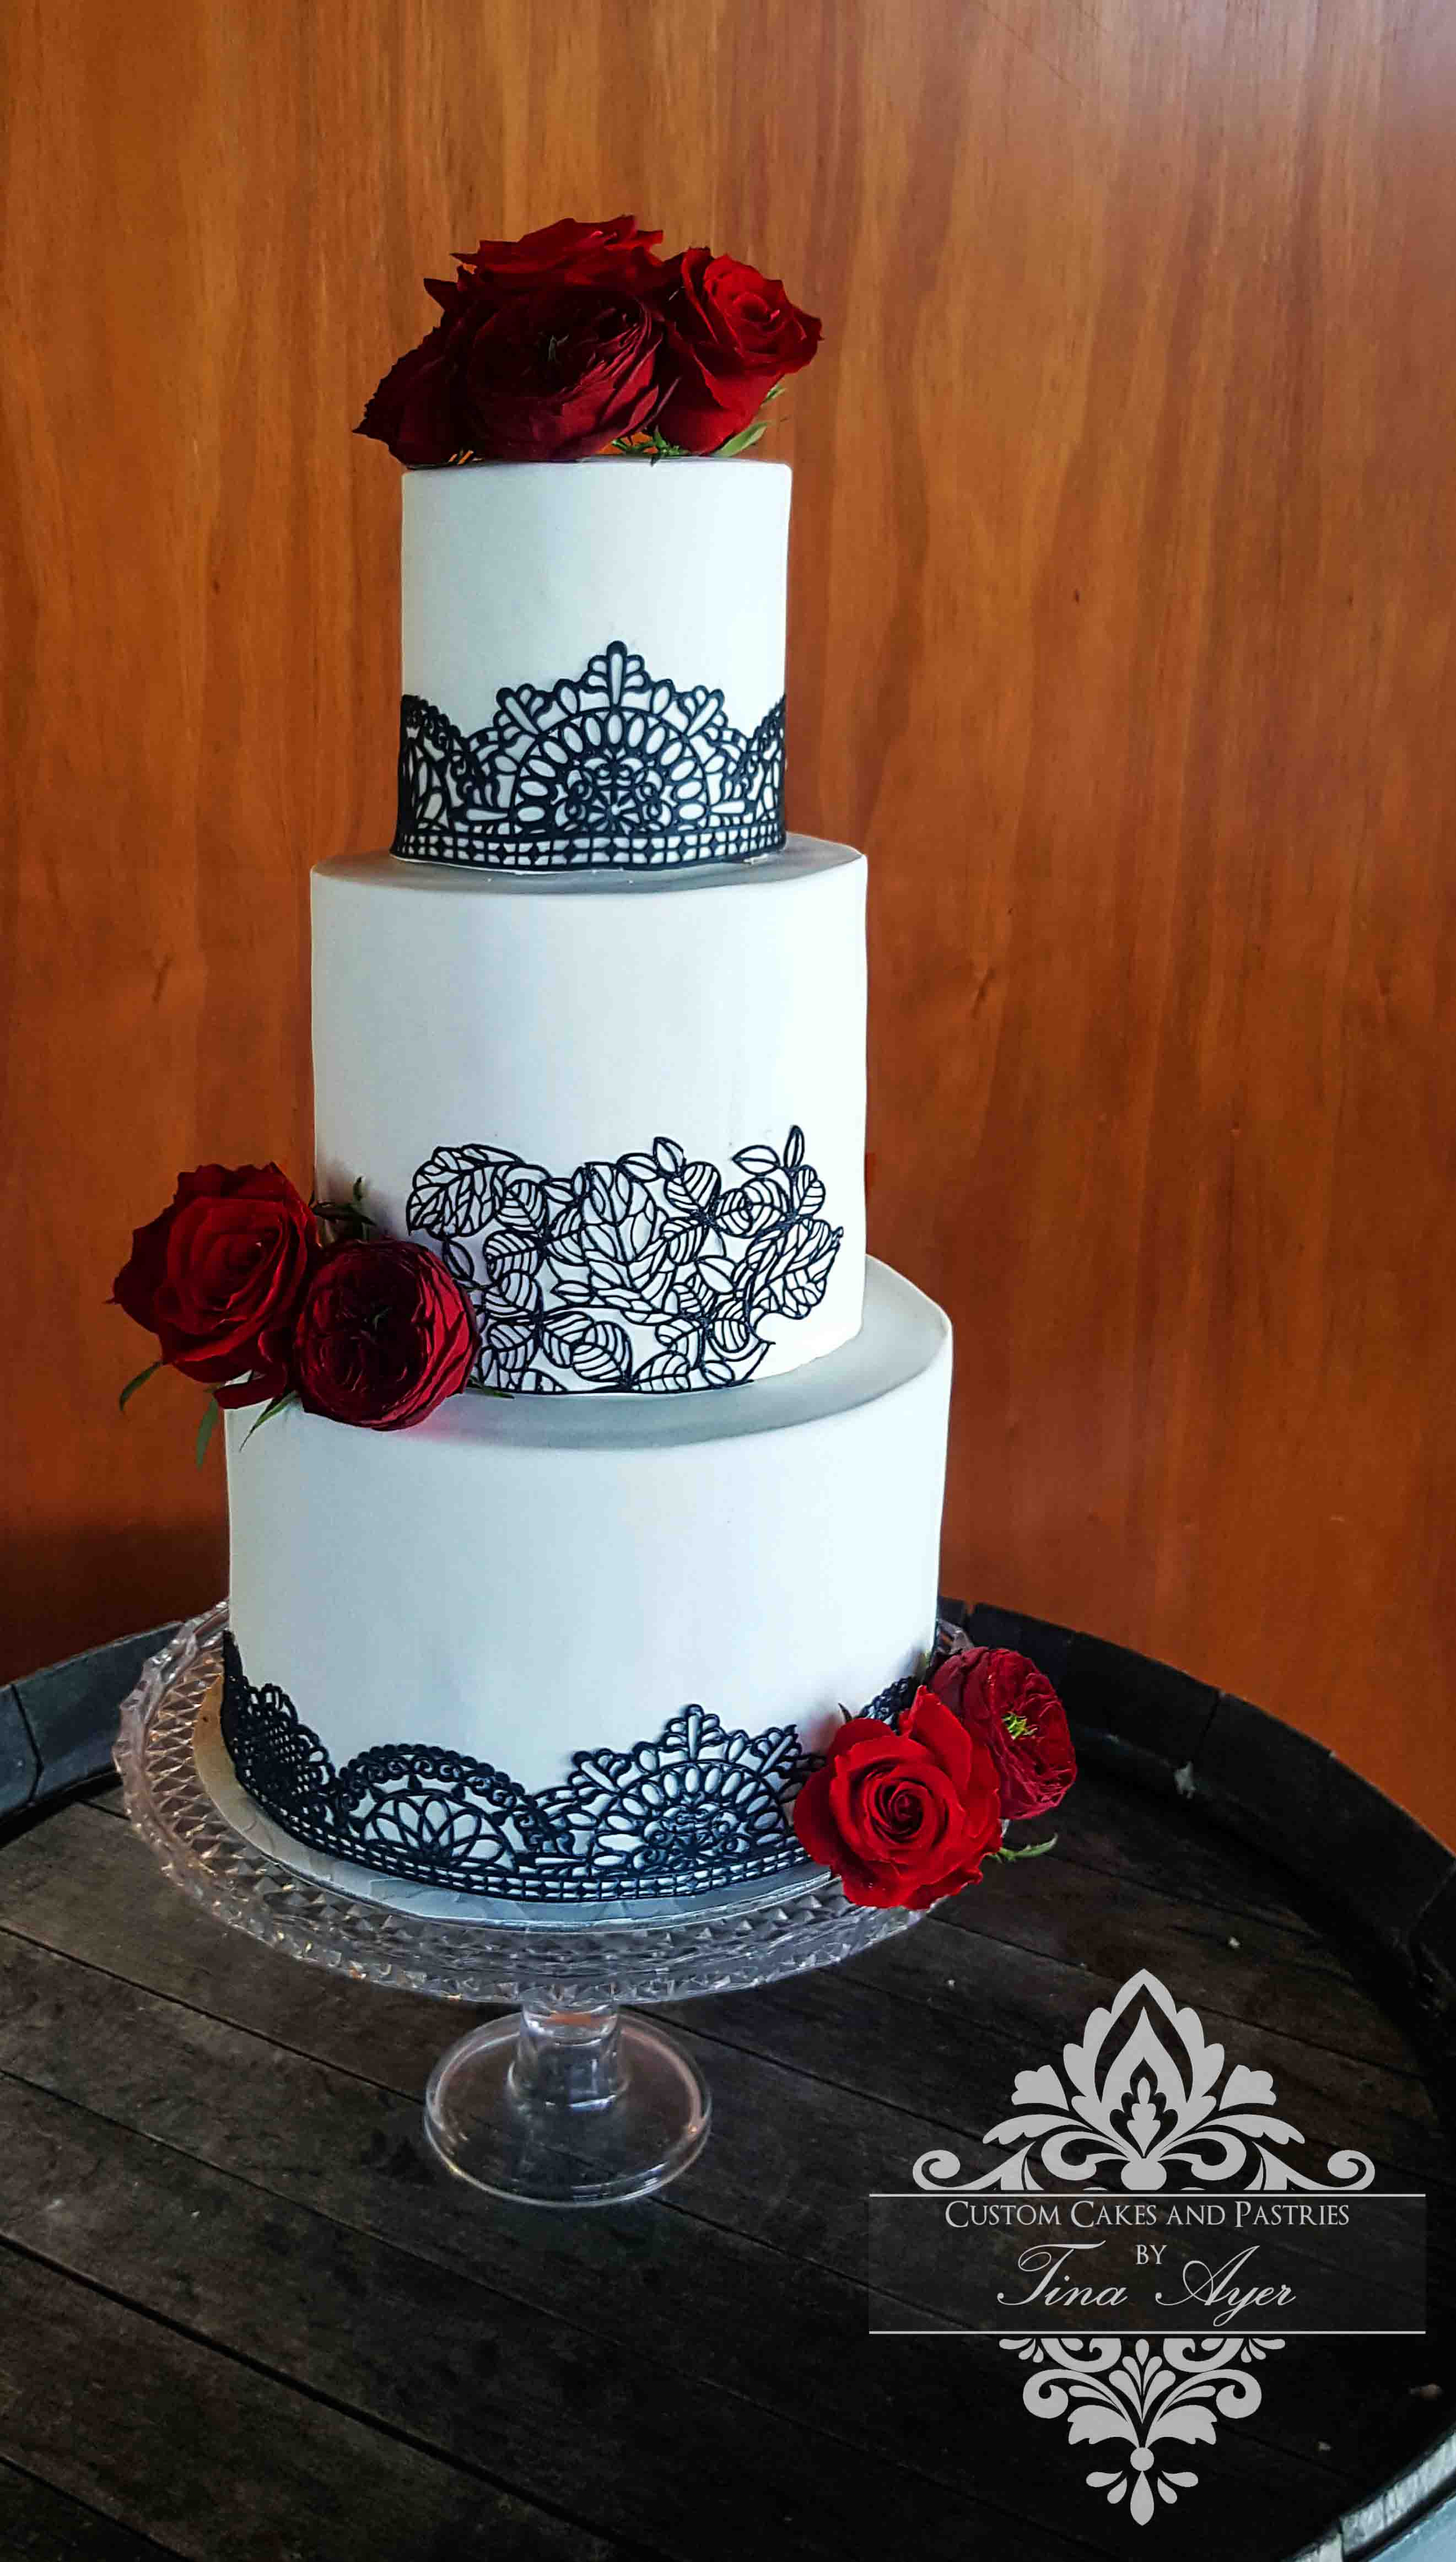 Giant Eagle Wedding Cakes  Giant Eagle Wedding Cakes